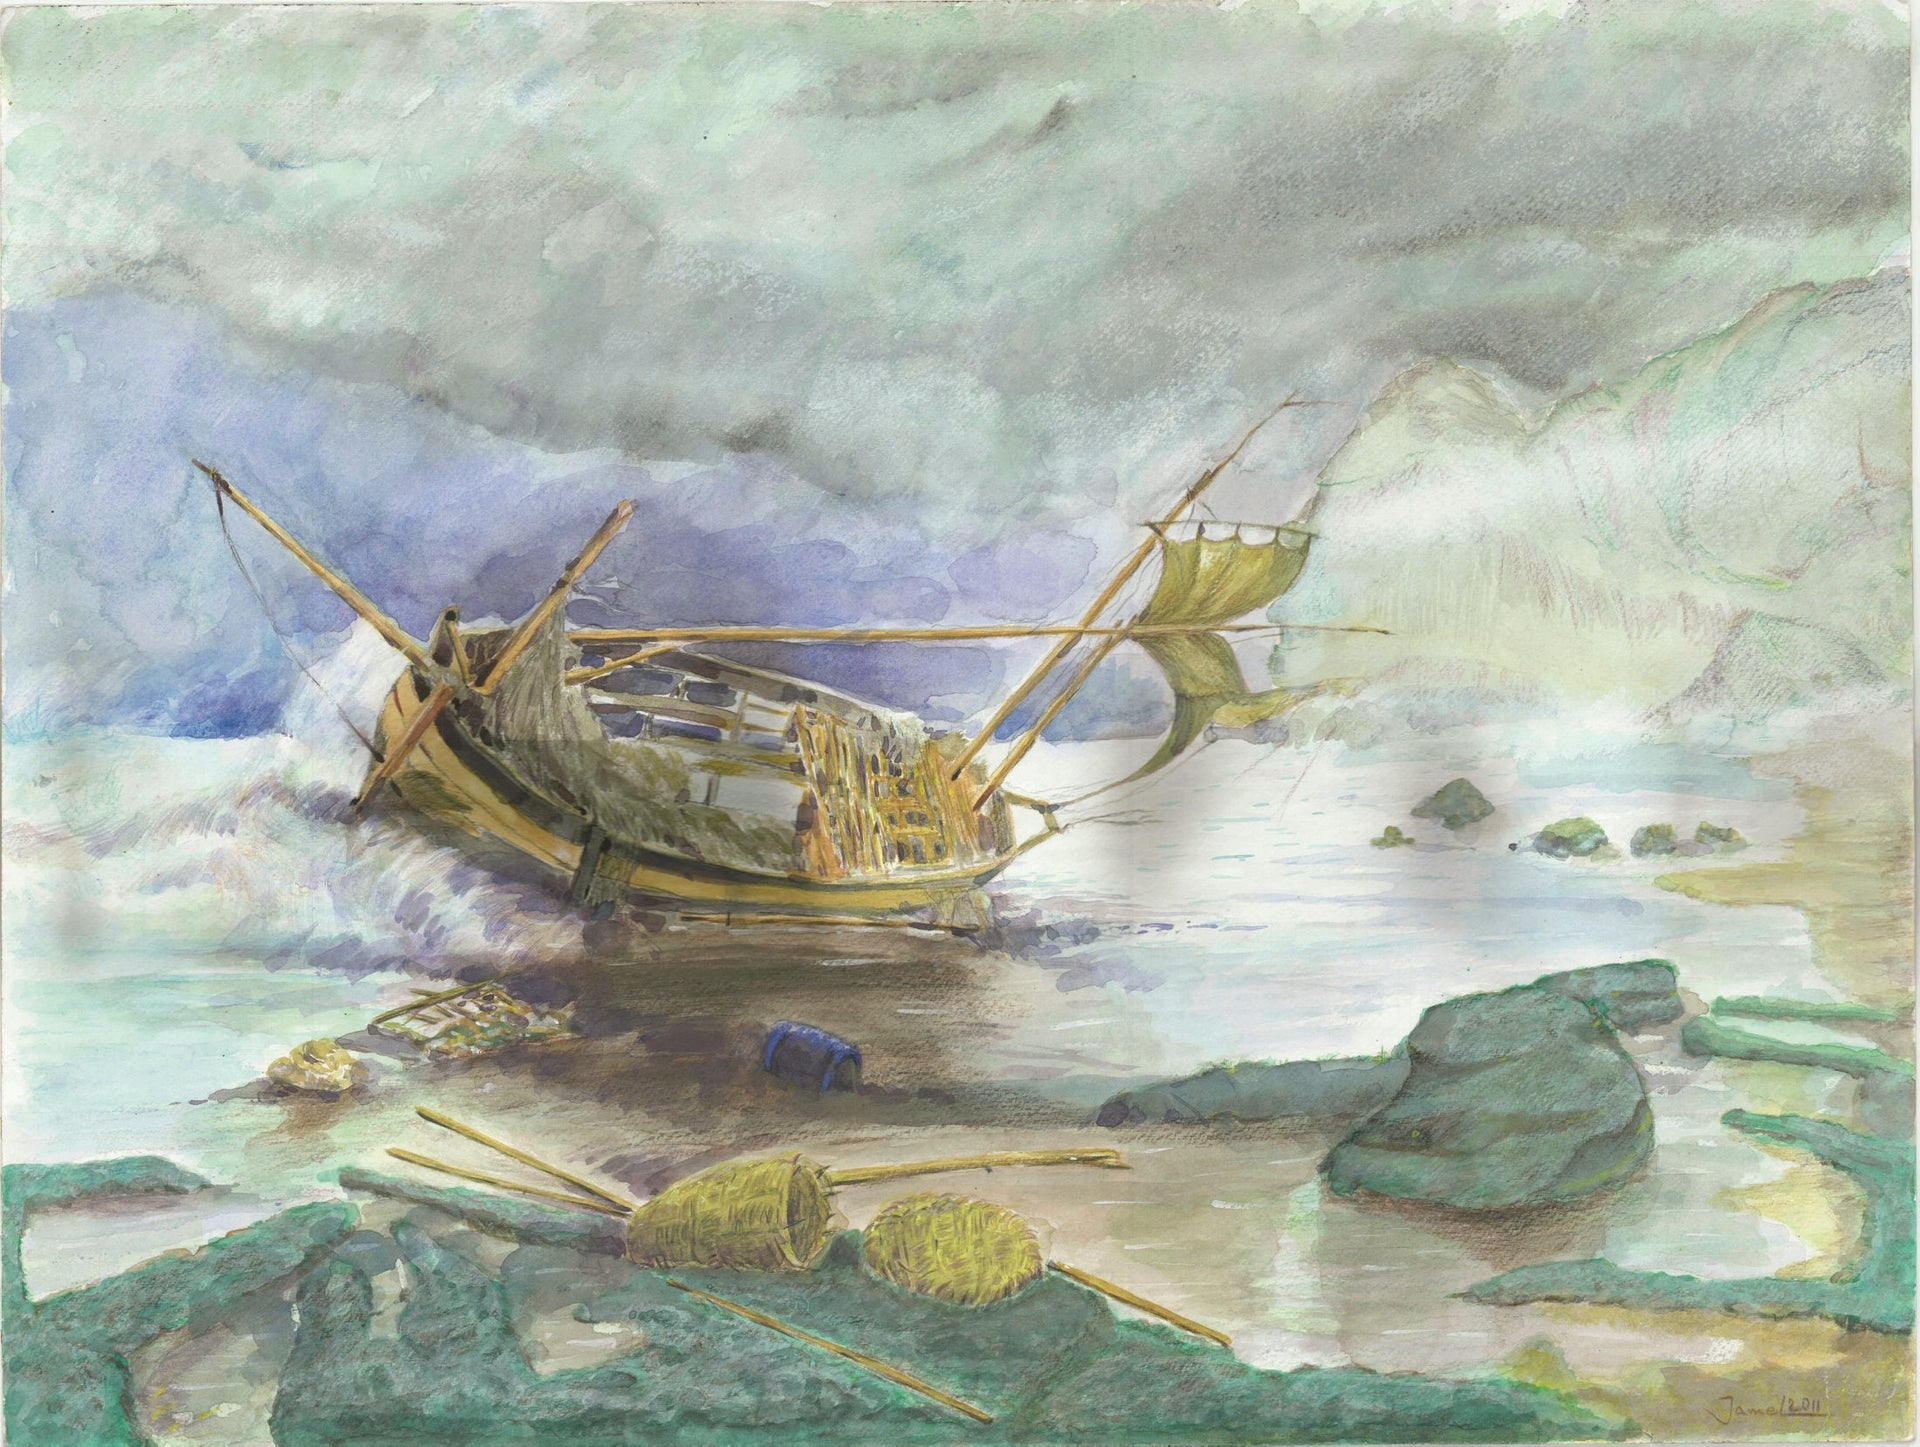 'Shipwrecked Boat', a painting by Djamel Ameziane.